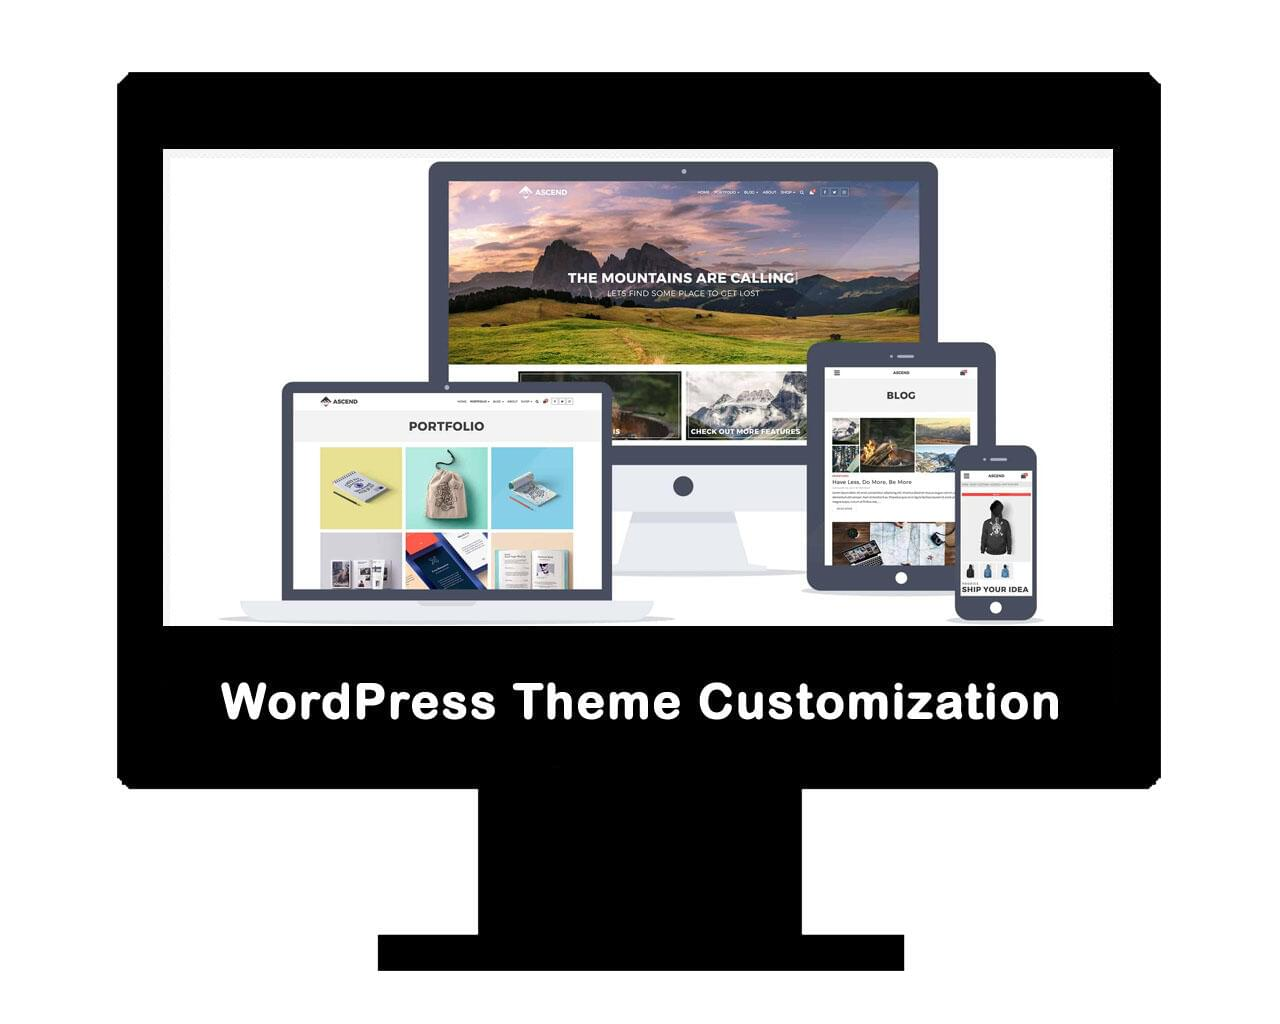 WordPress Customization (WordPress Theme Customization) by AritonangWofa - 118289